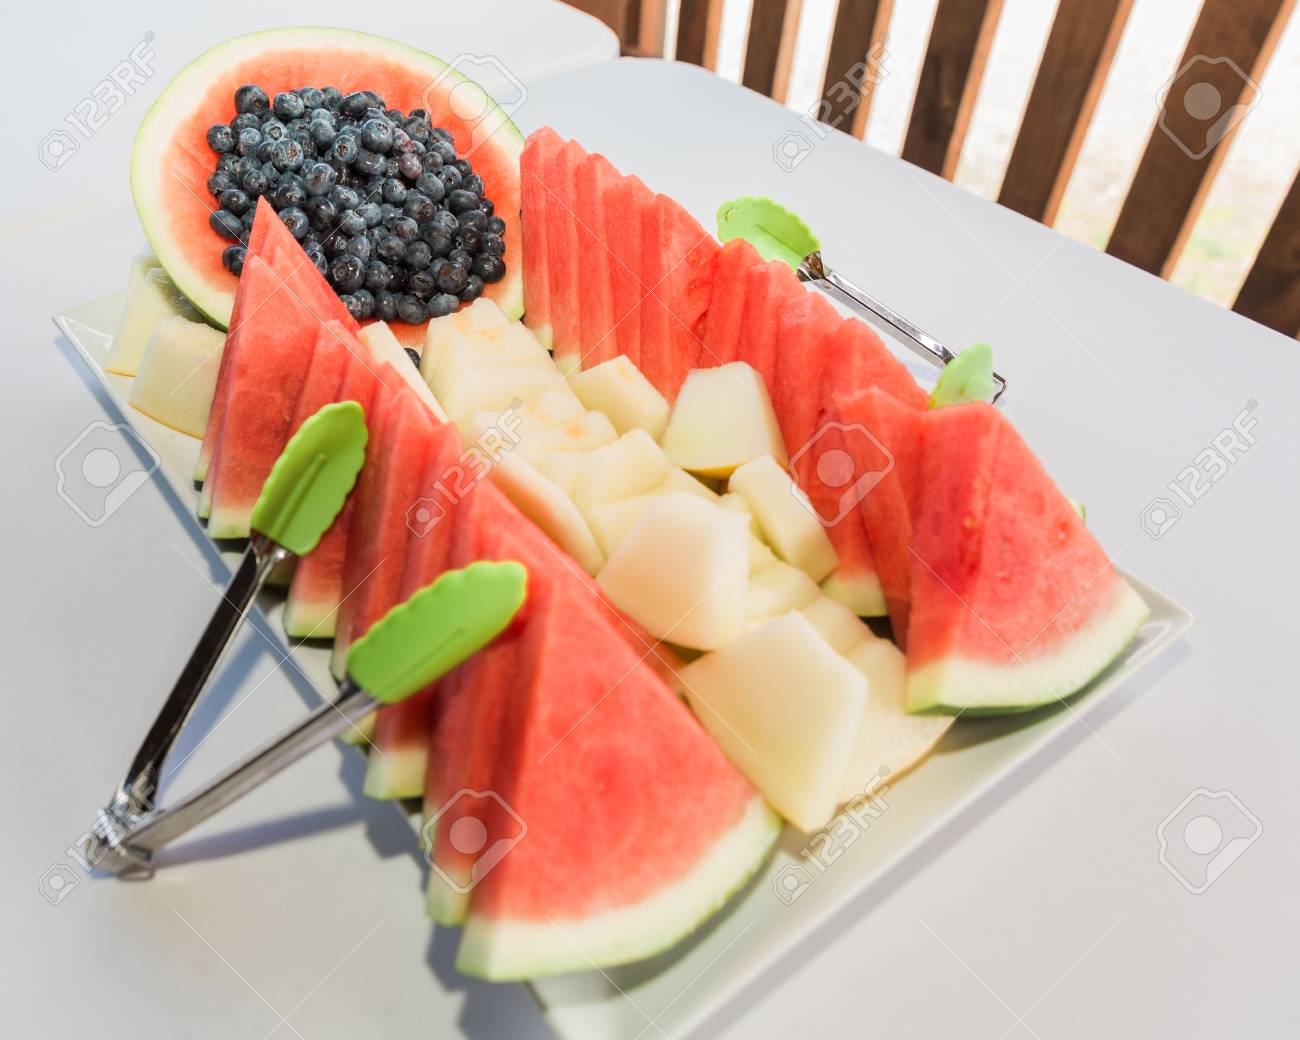 Fresh Fruit Platter Design Ideas For Banquet Or Breakfast Sliced Stock Photo Picture And Royalty Free Image Image 81764568